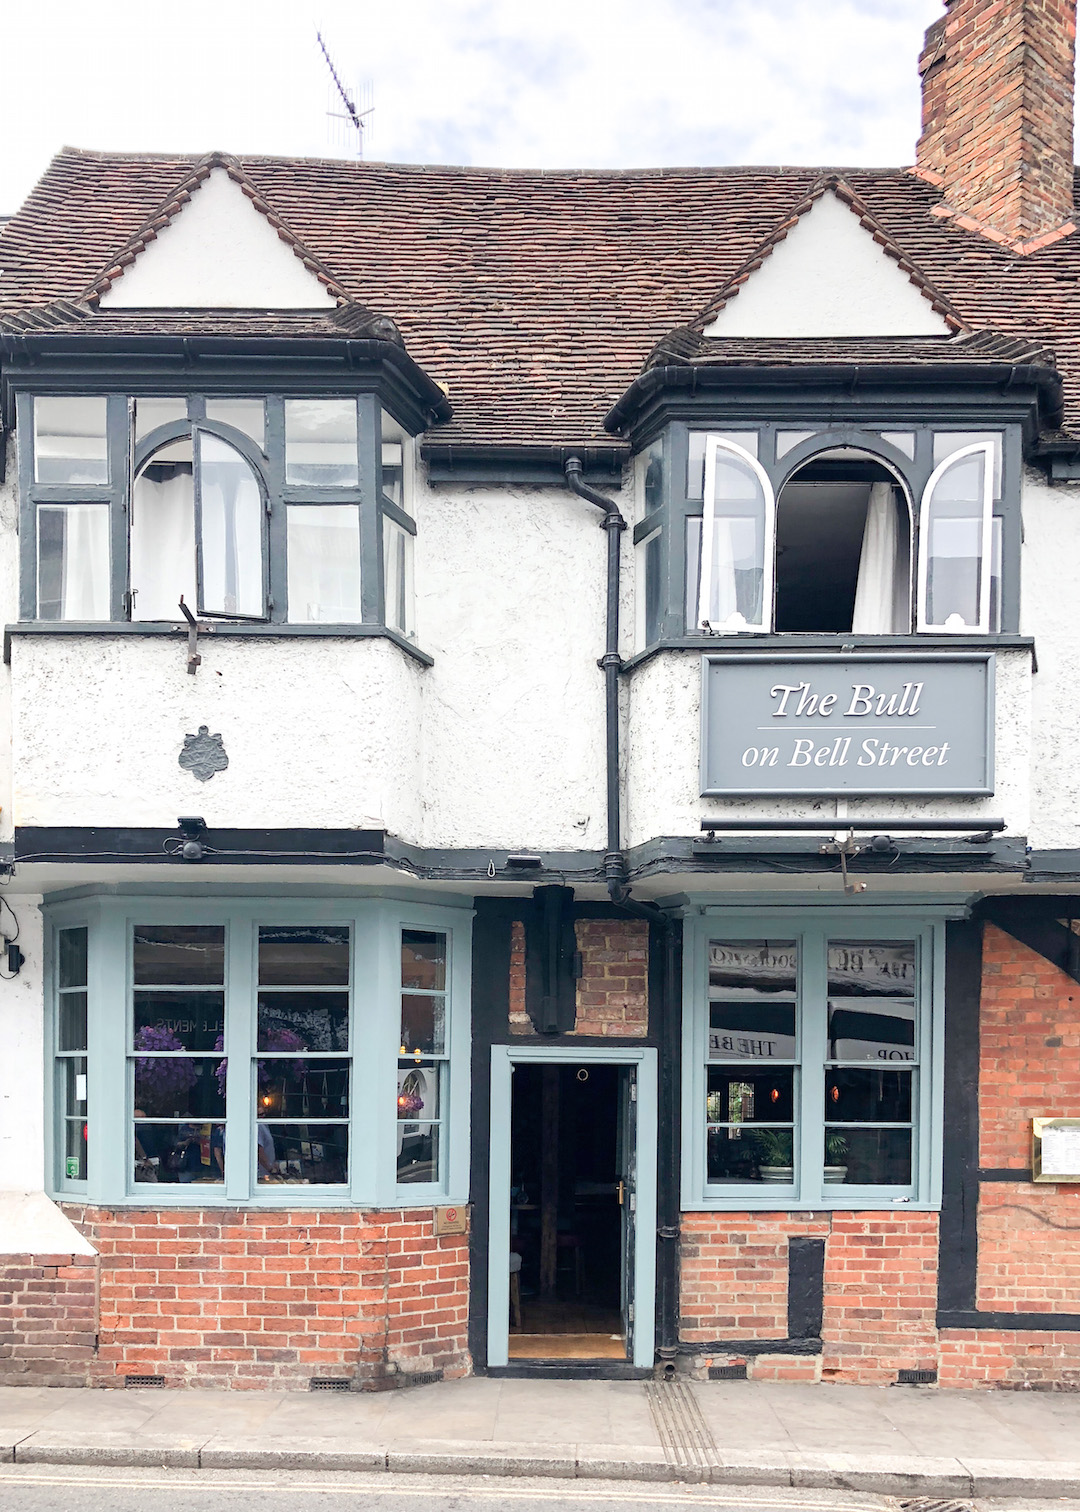 The Bull on Bell Street, Henley on Thames